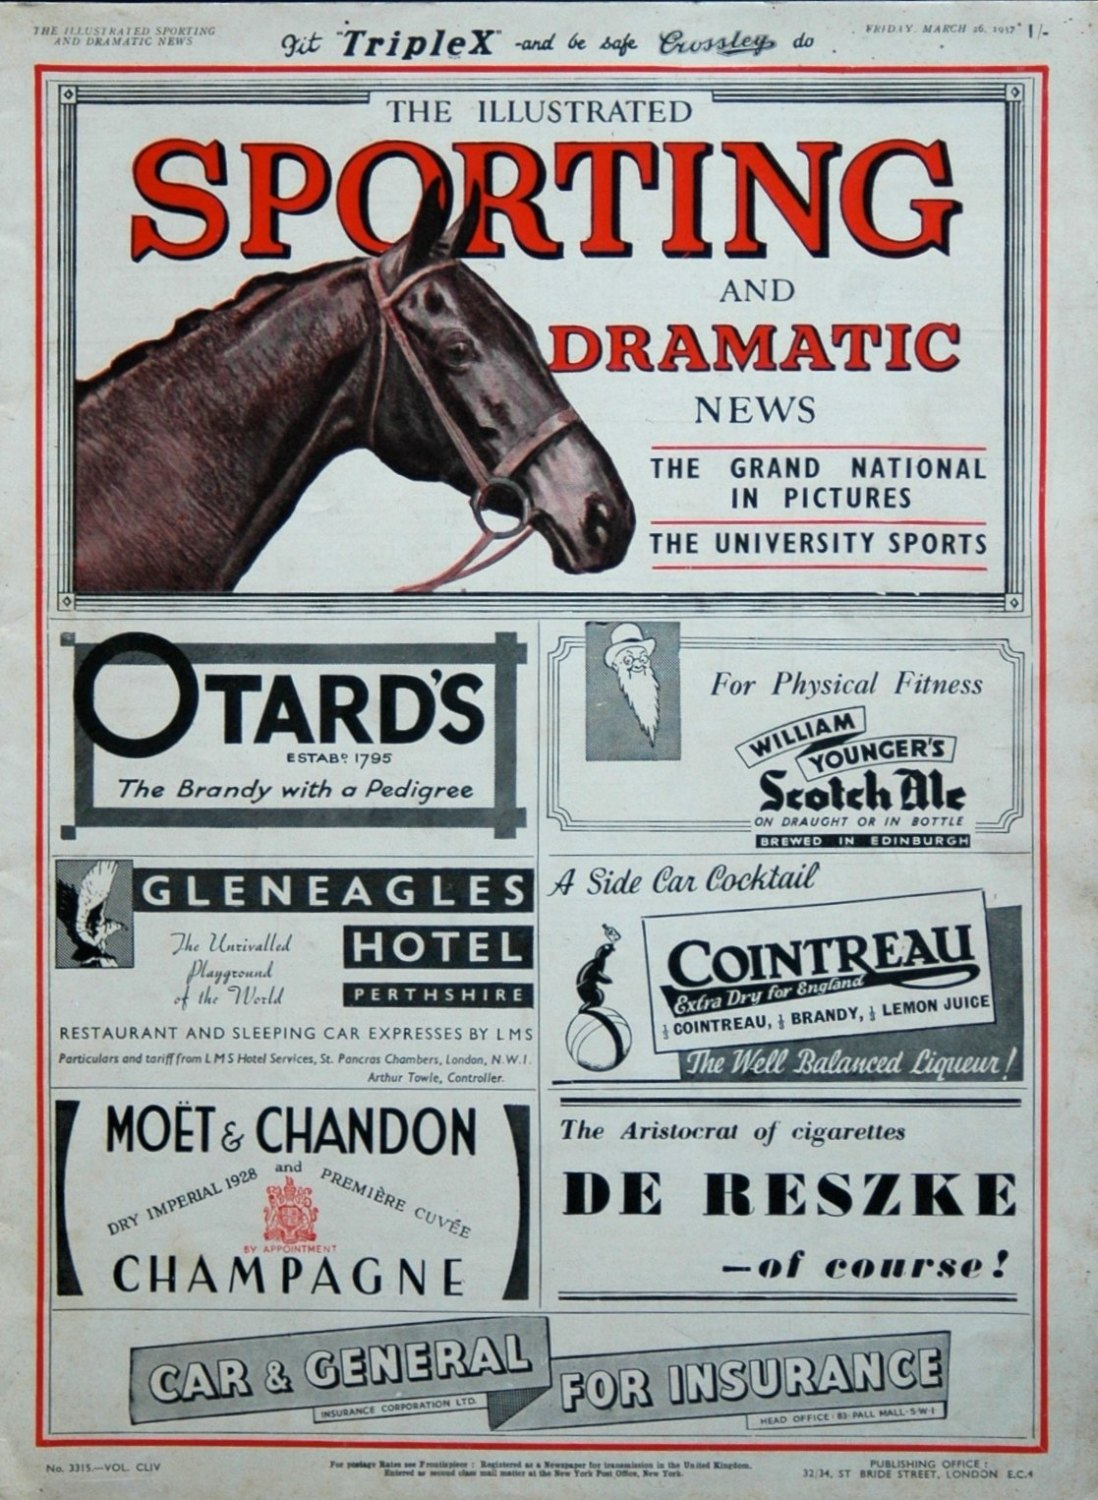 Illustrated Sporting and Dramatic News March 26th 1937.